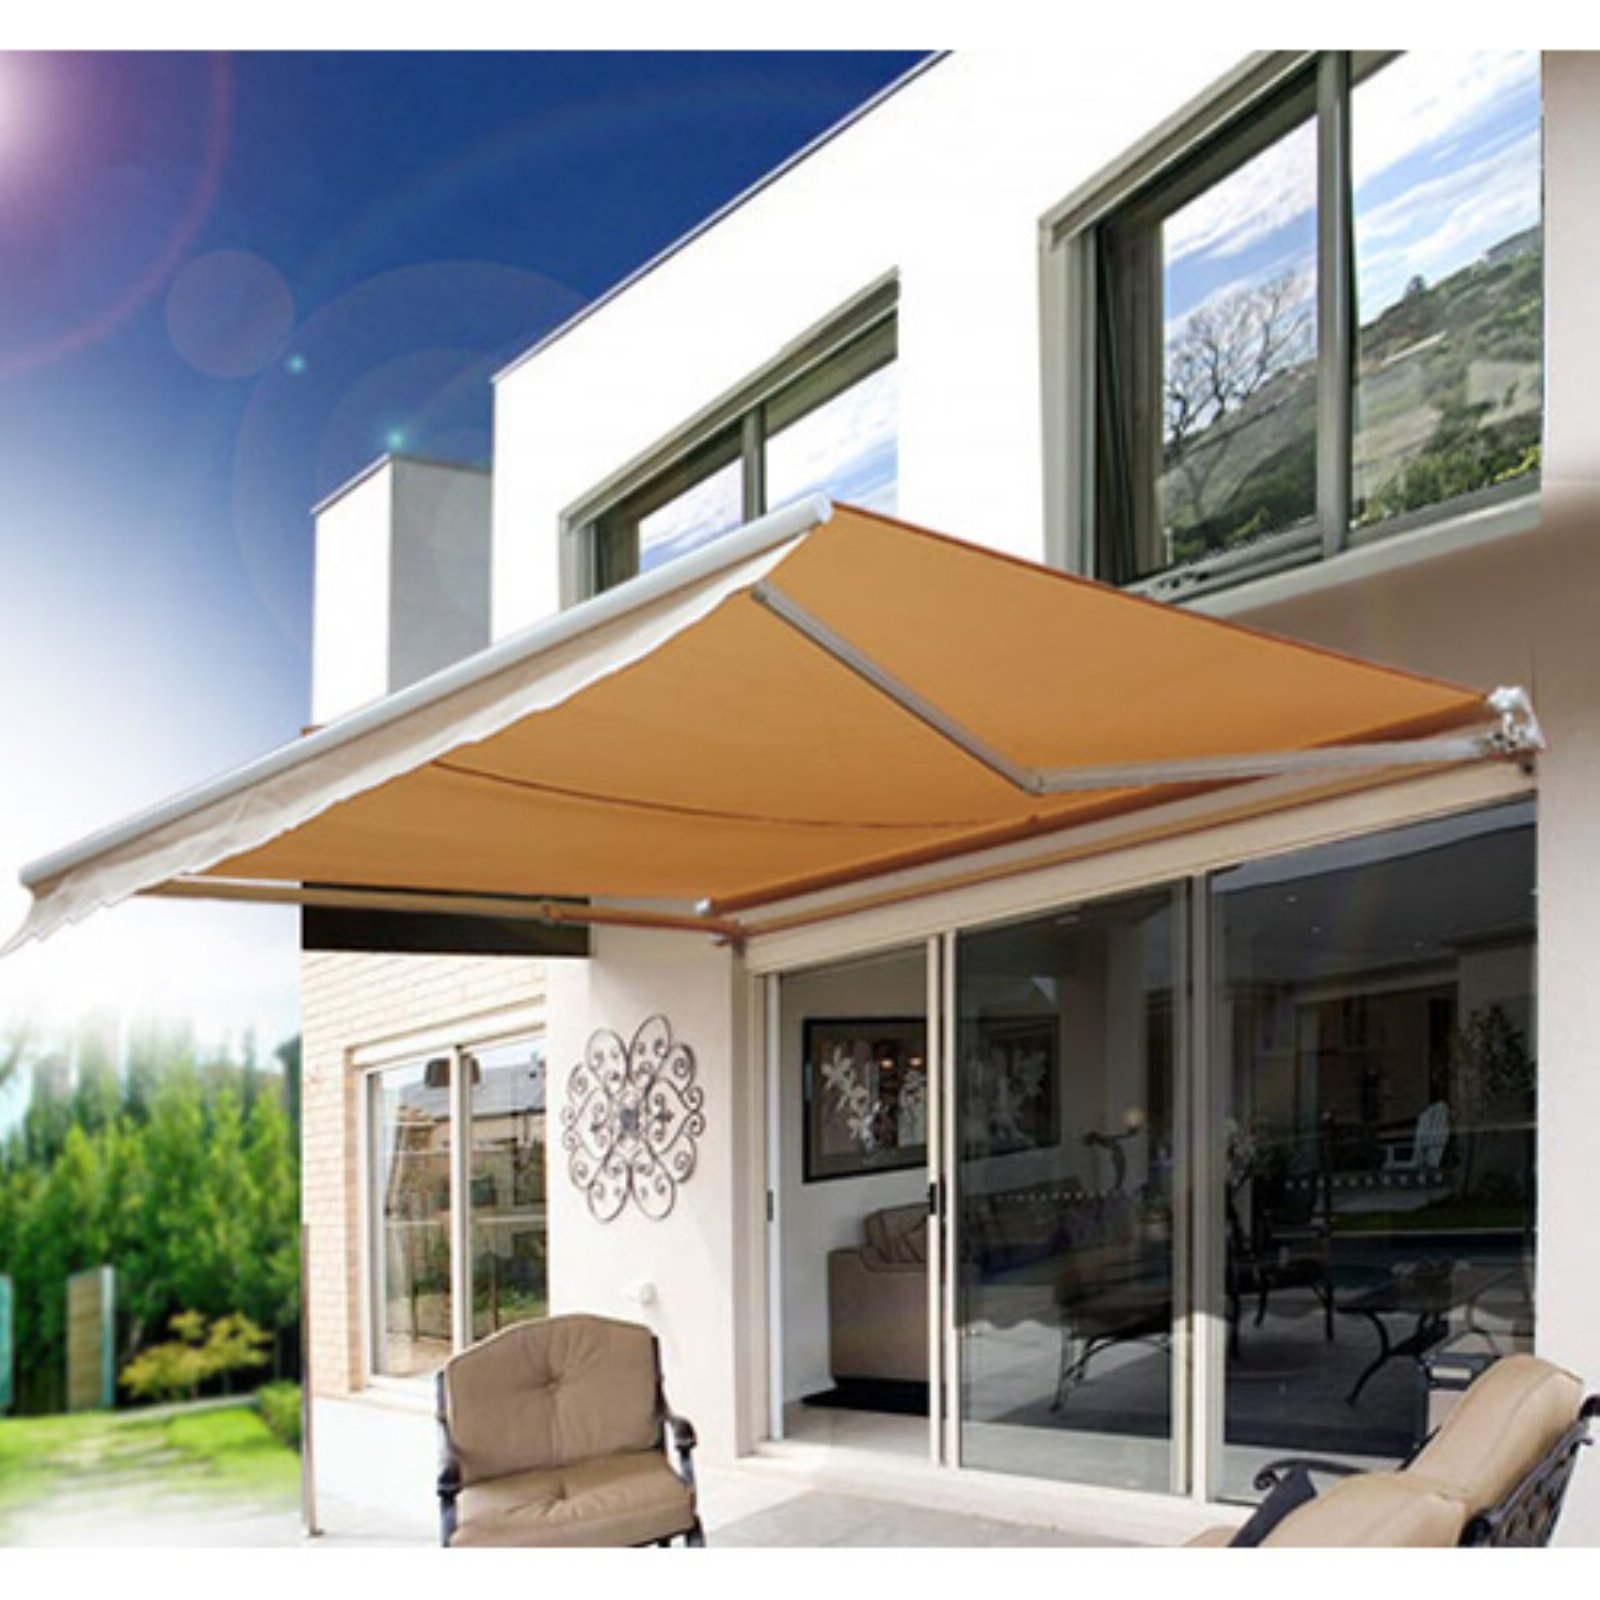 Outsunny 8 x 7 ft. Manual Retractable Sun Shade Patio Awning